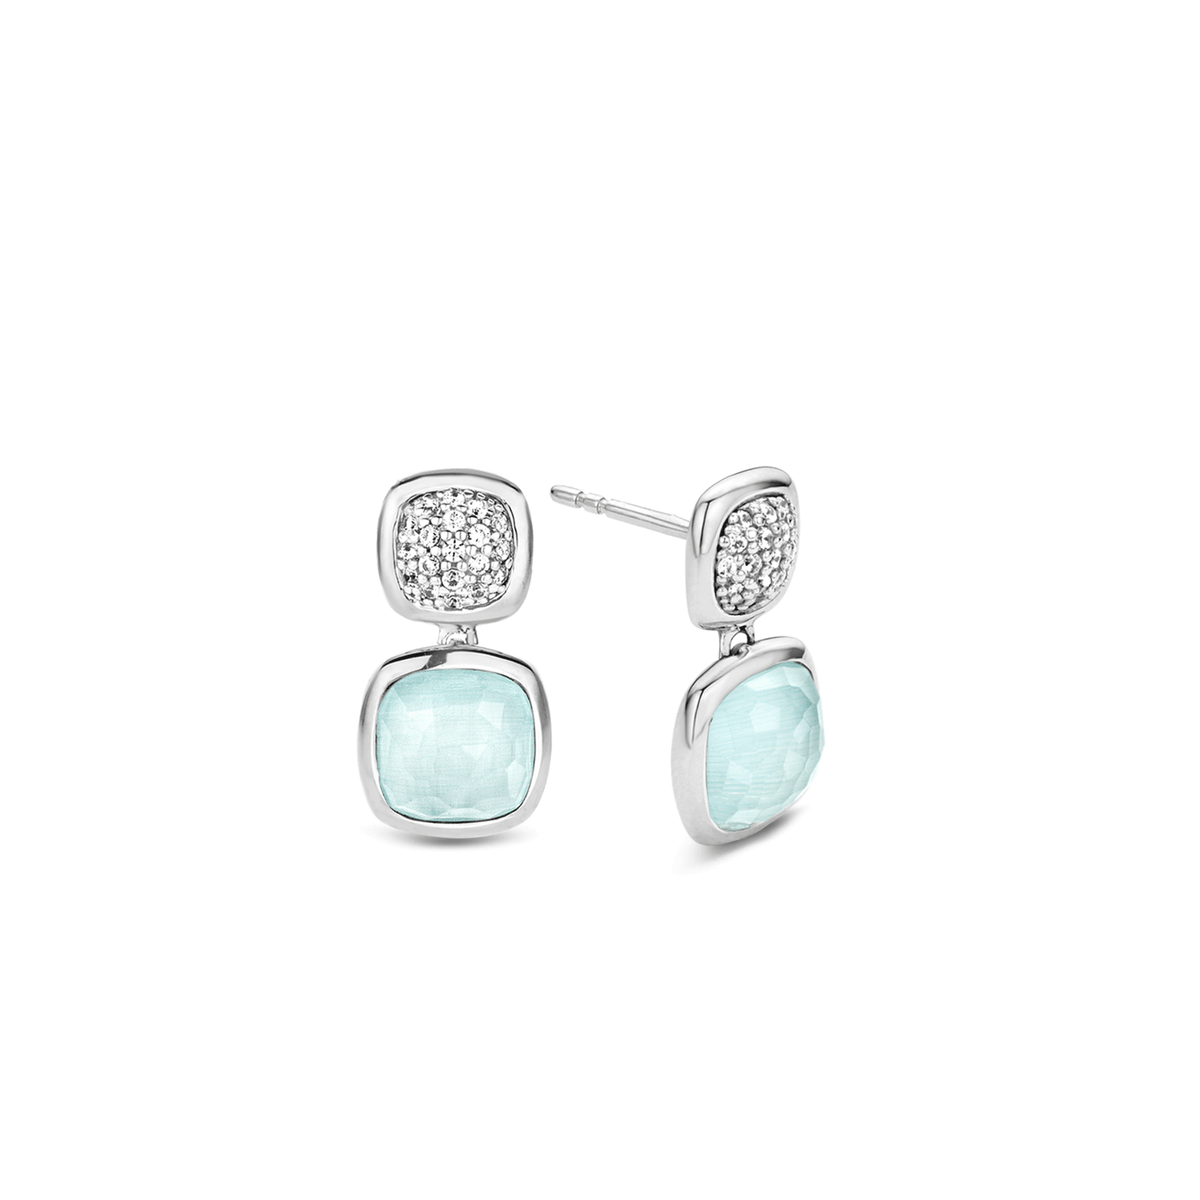 TI SENTO - Milano Earrings 7735AG